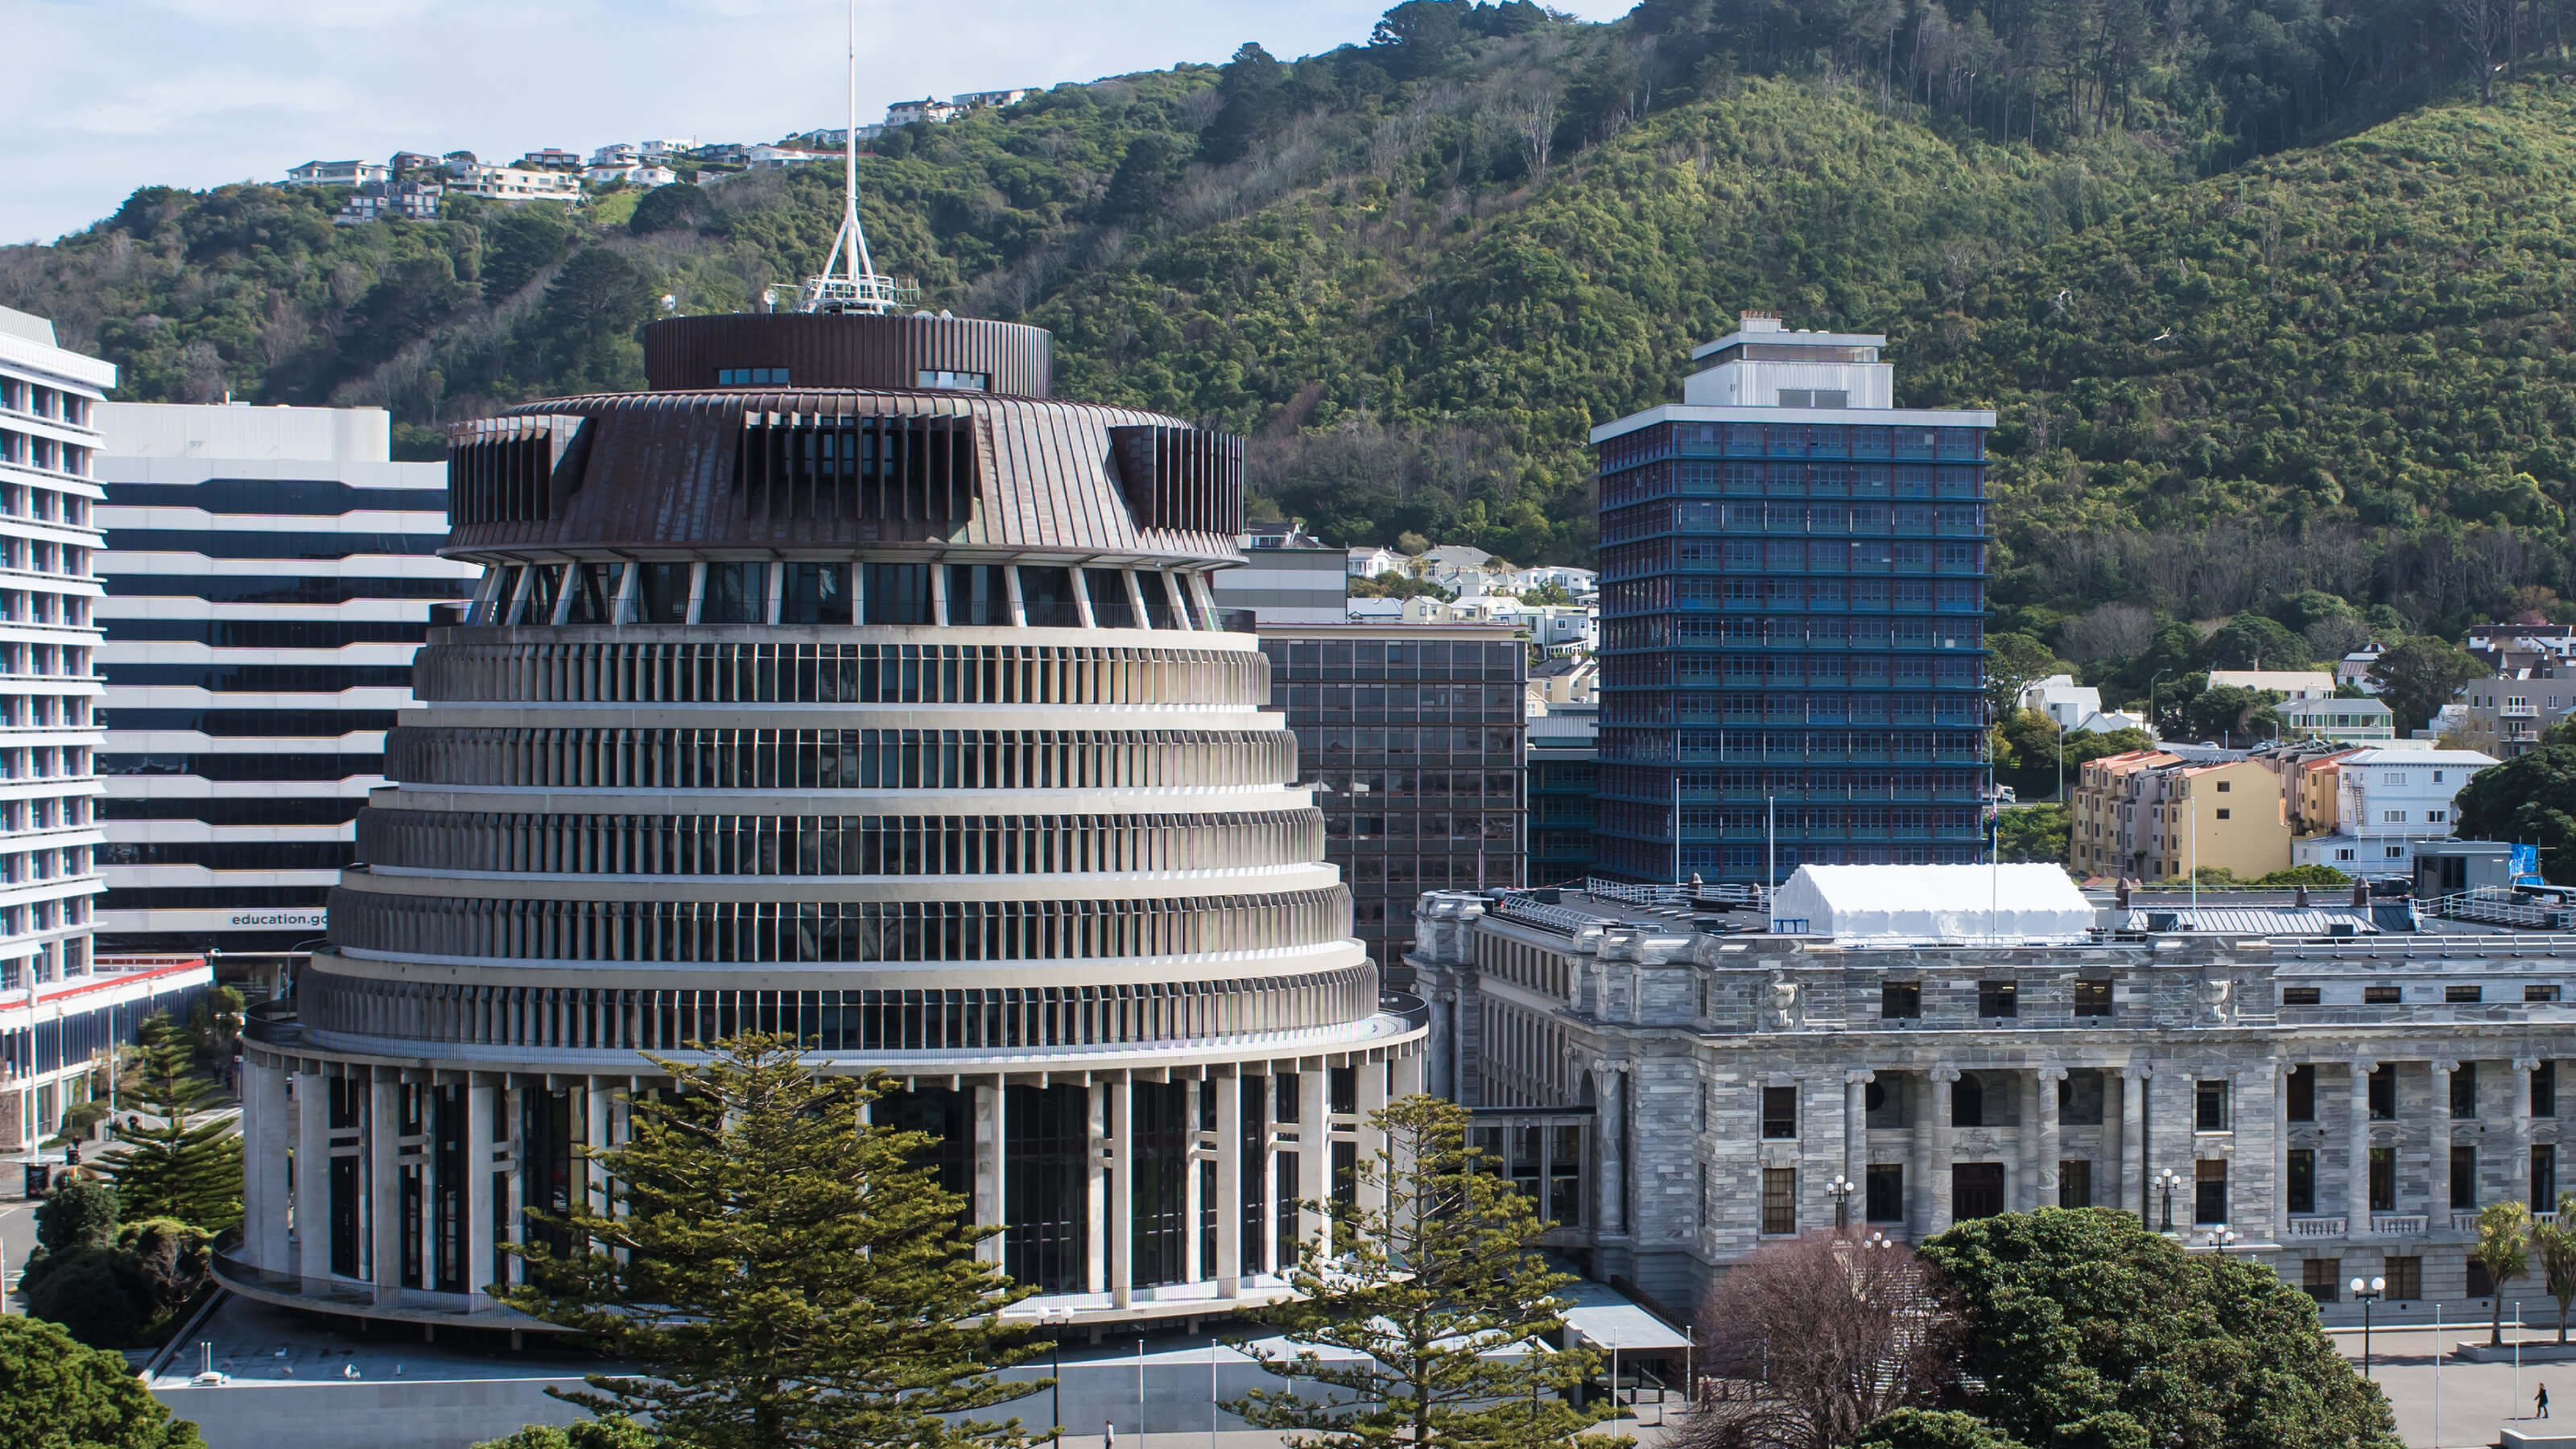 An image of the parliament buildings in Wellington, New Zealand.